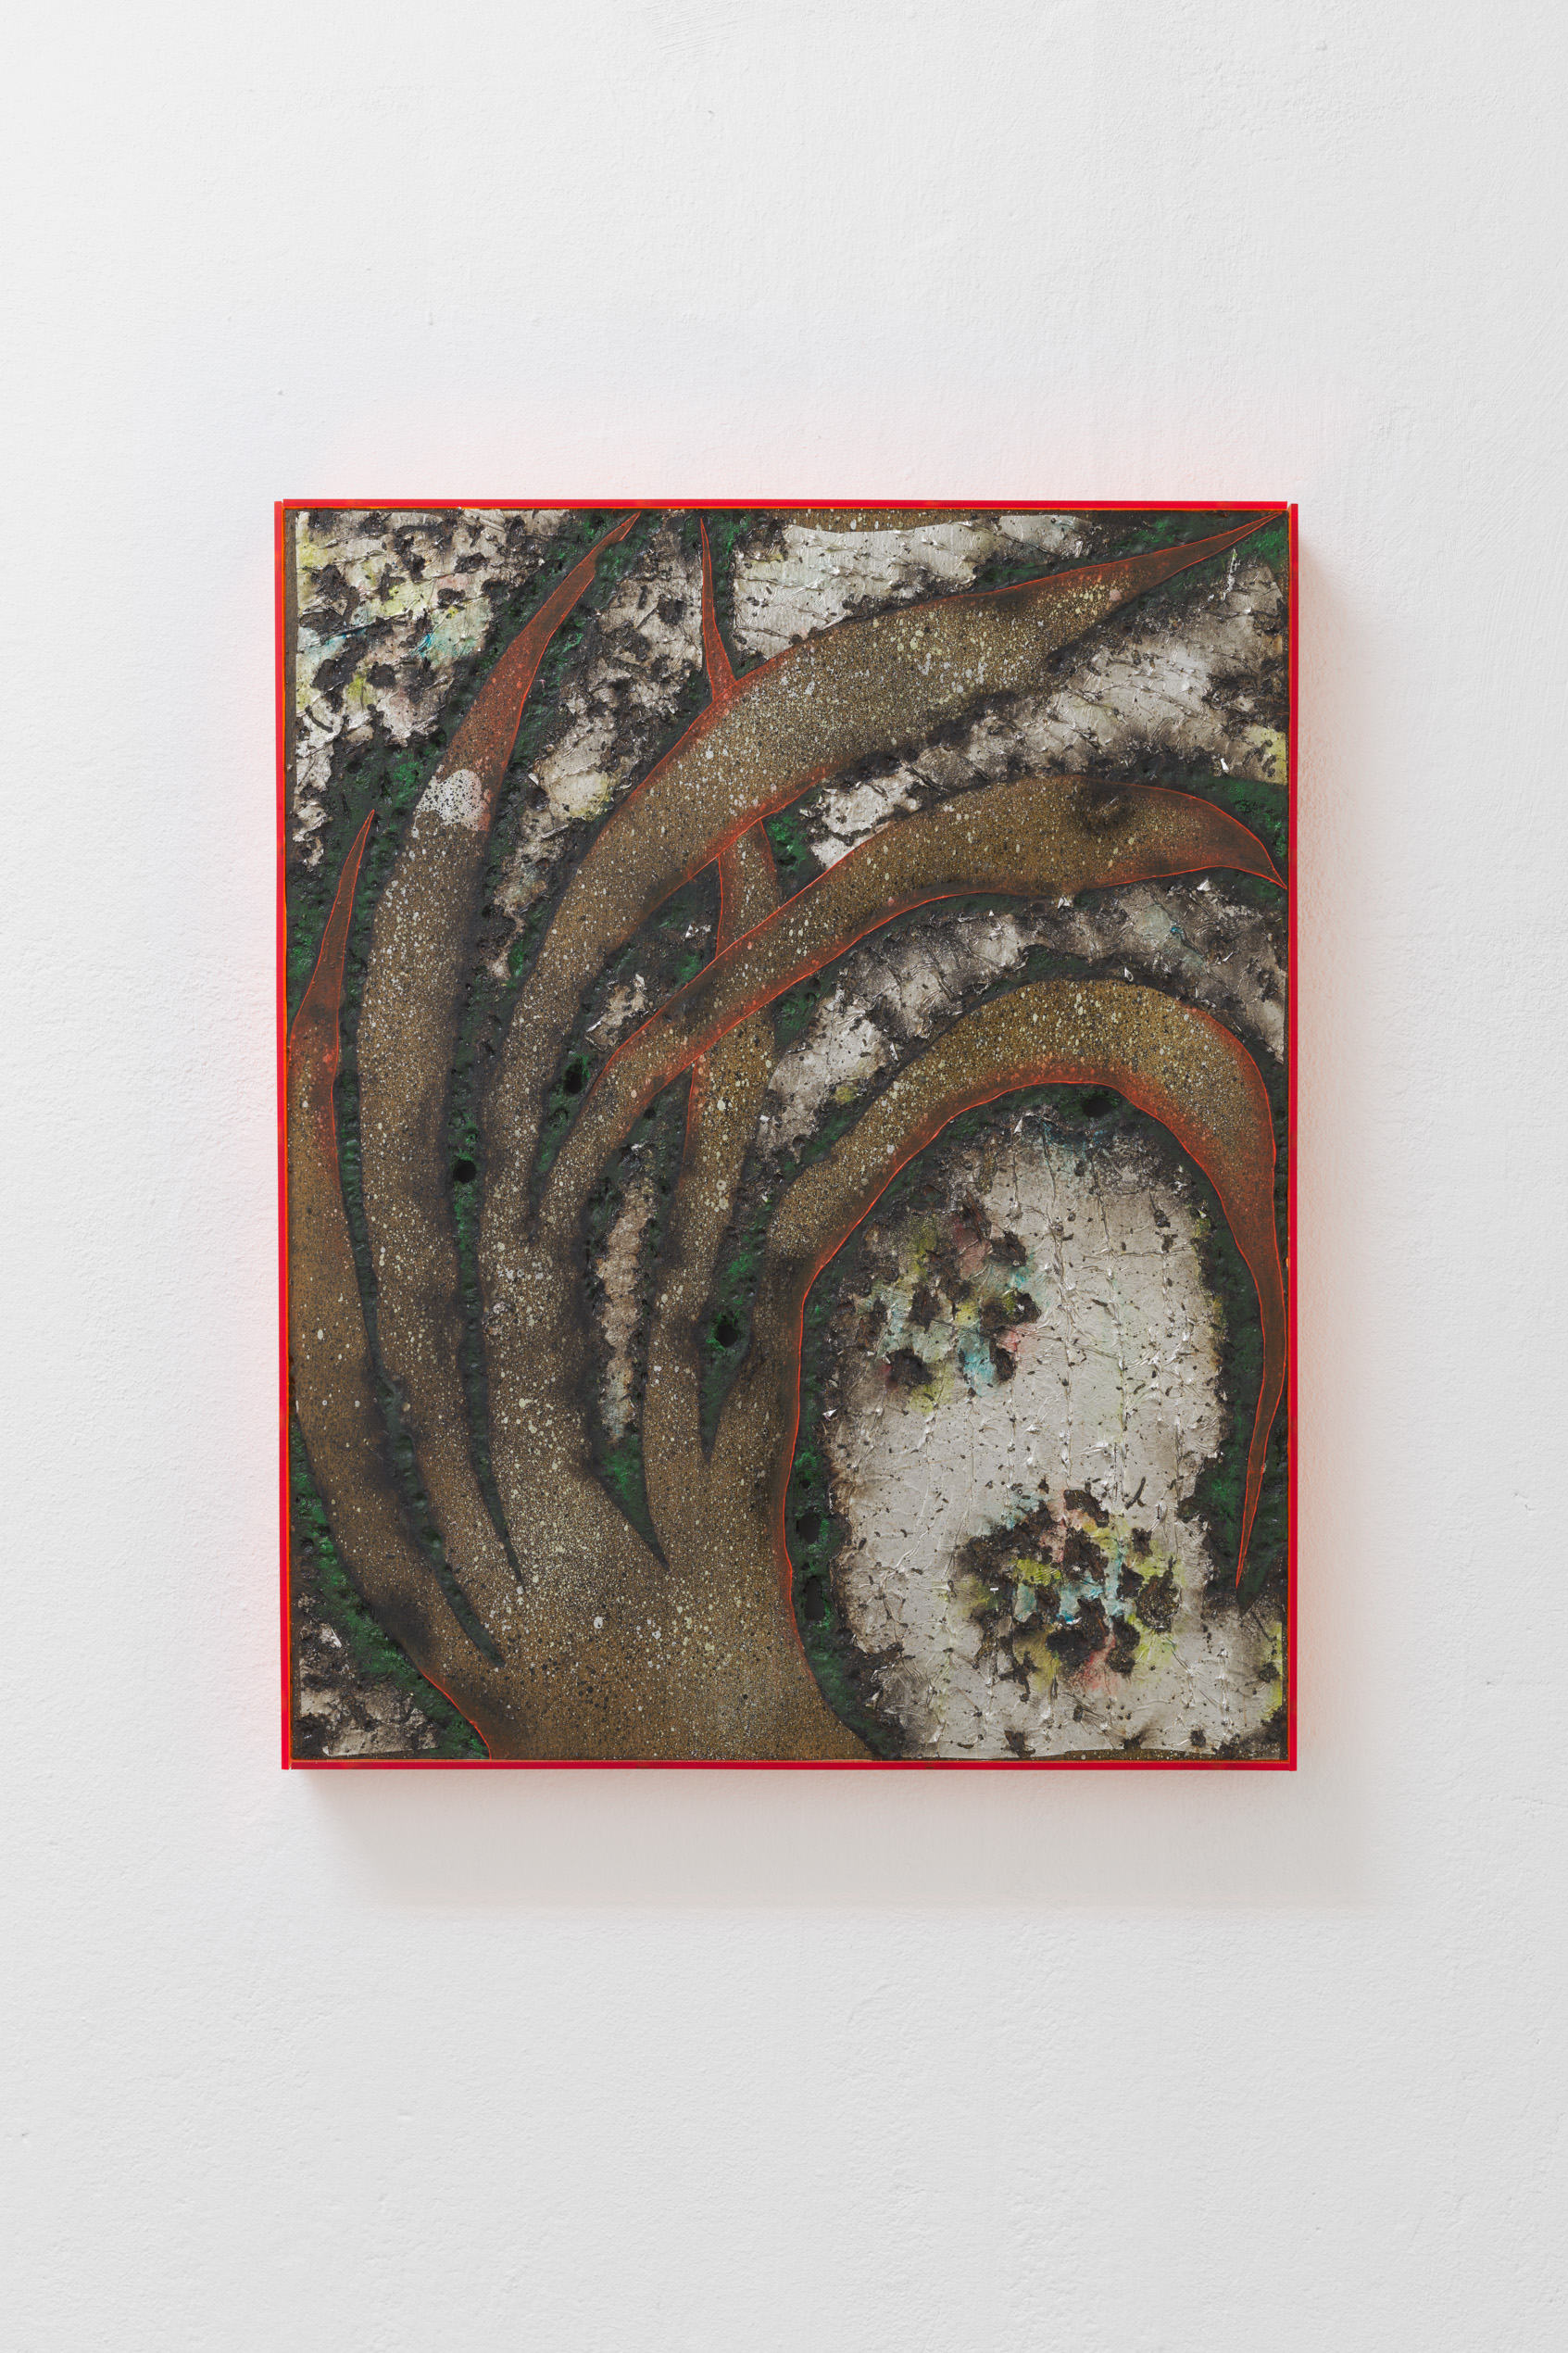 Davide Zucco, Yellow plant, 2017, oil, spray paint, pigment, aluminium foil, combustions and varnish on wood, plexiglass frame